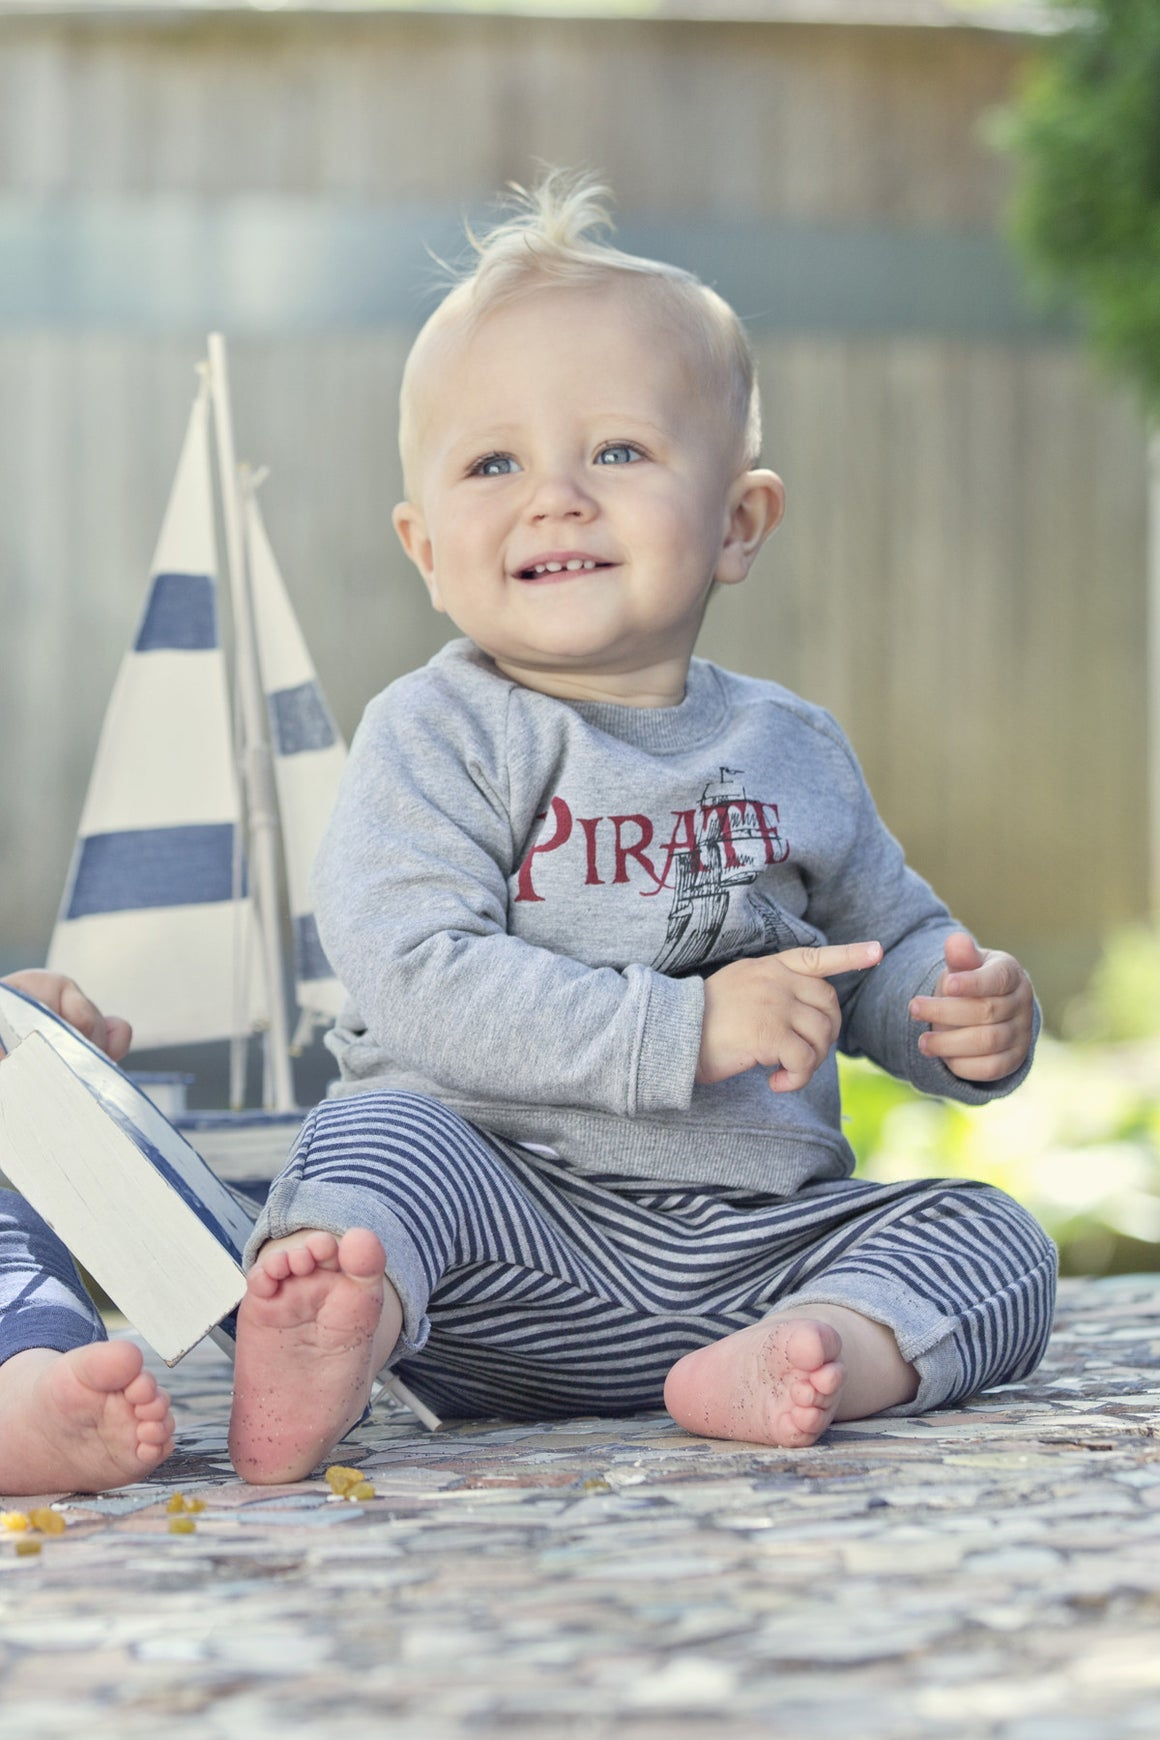 Wheat Pirate Sweatshirt - Baby